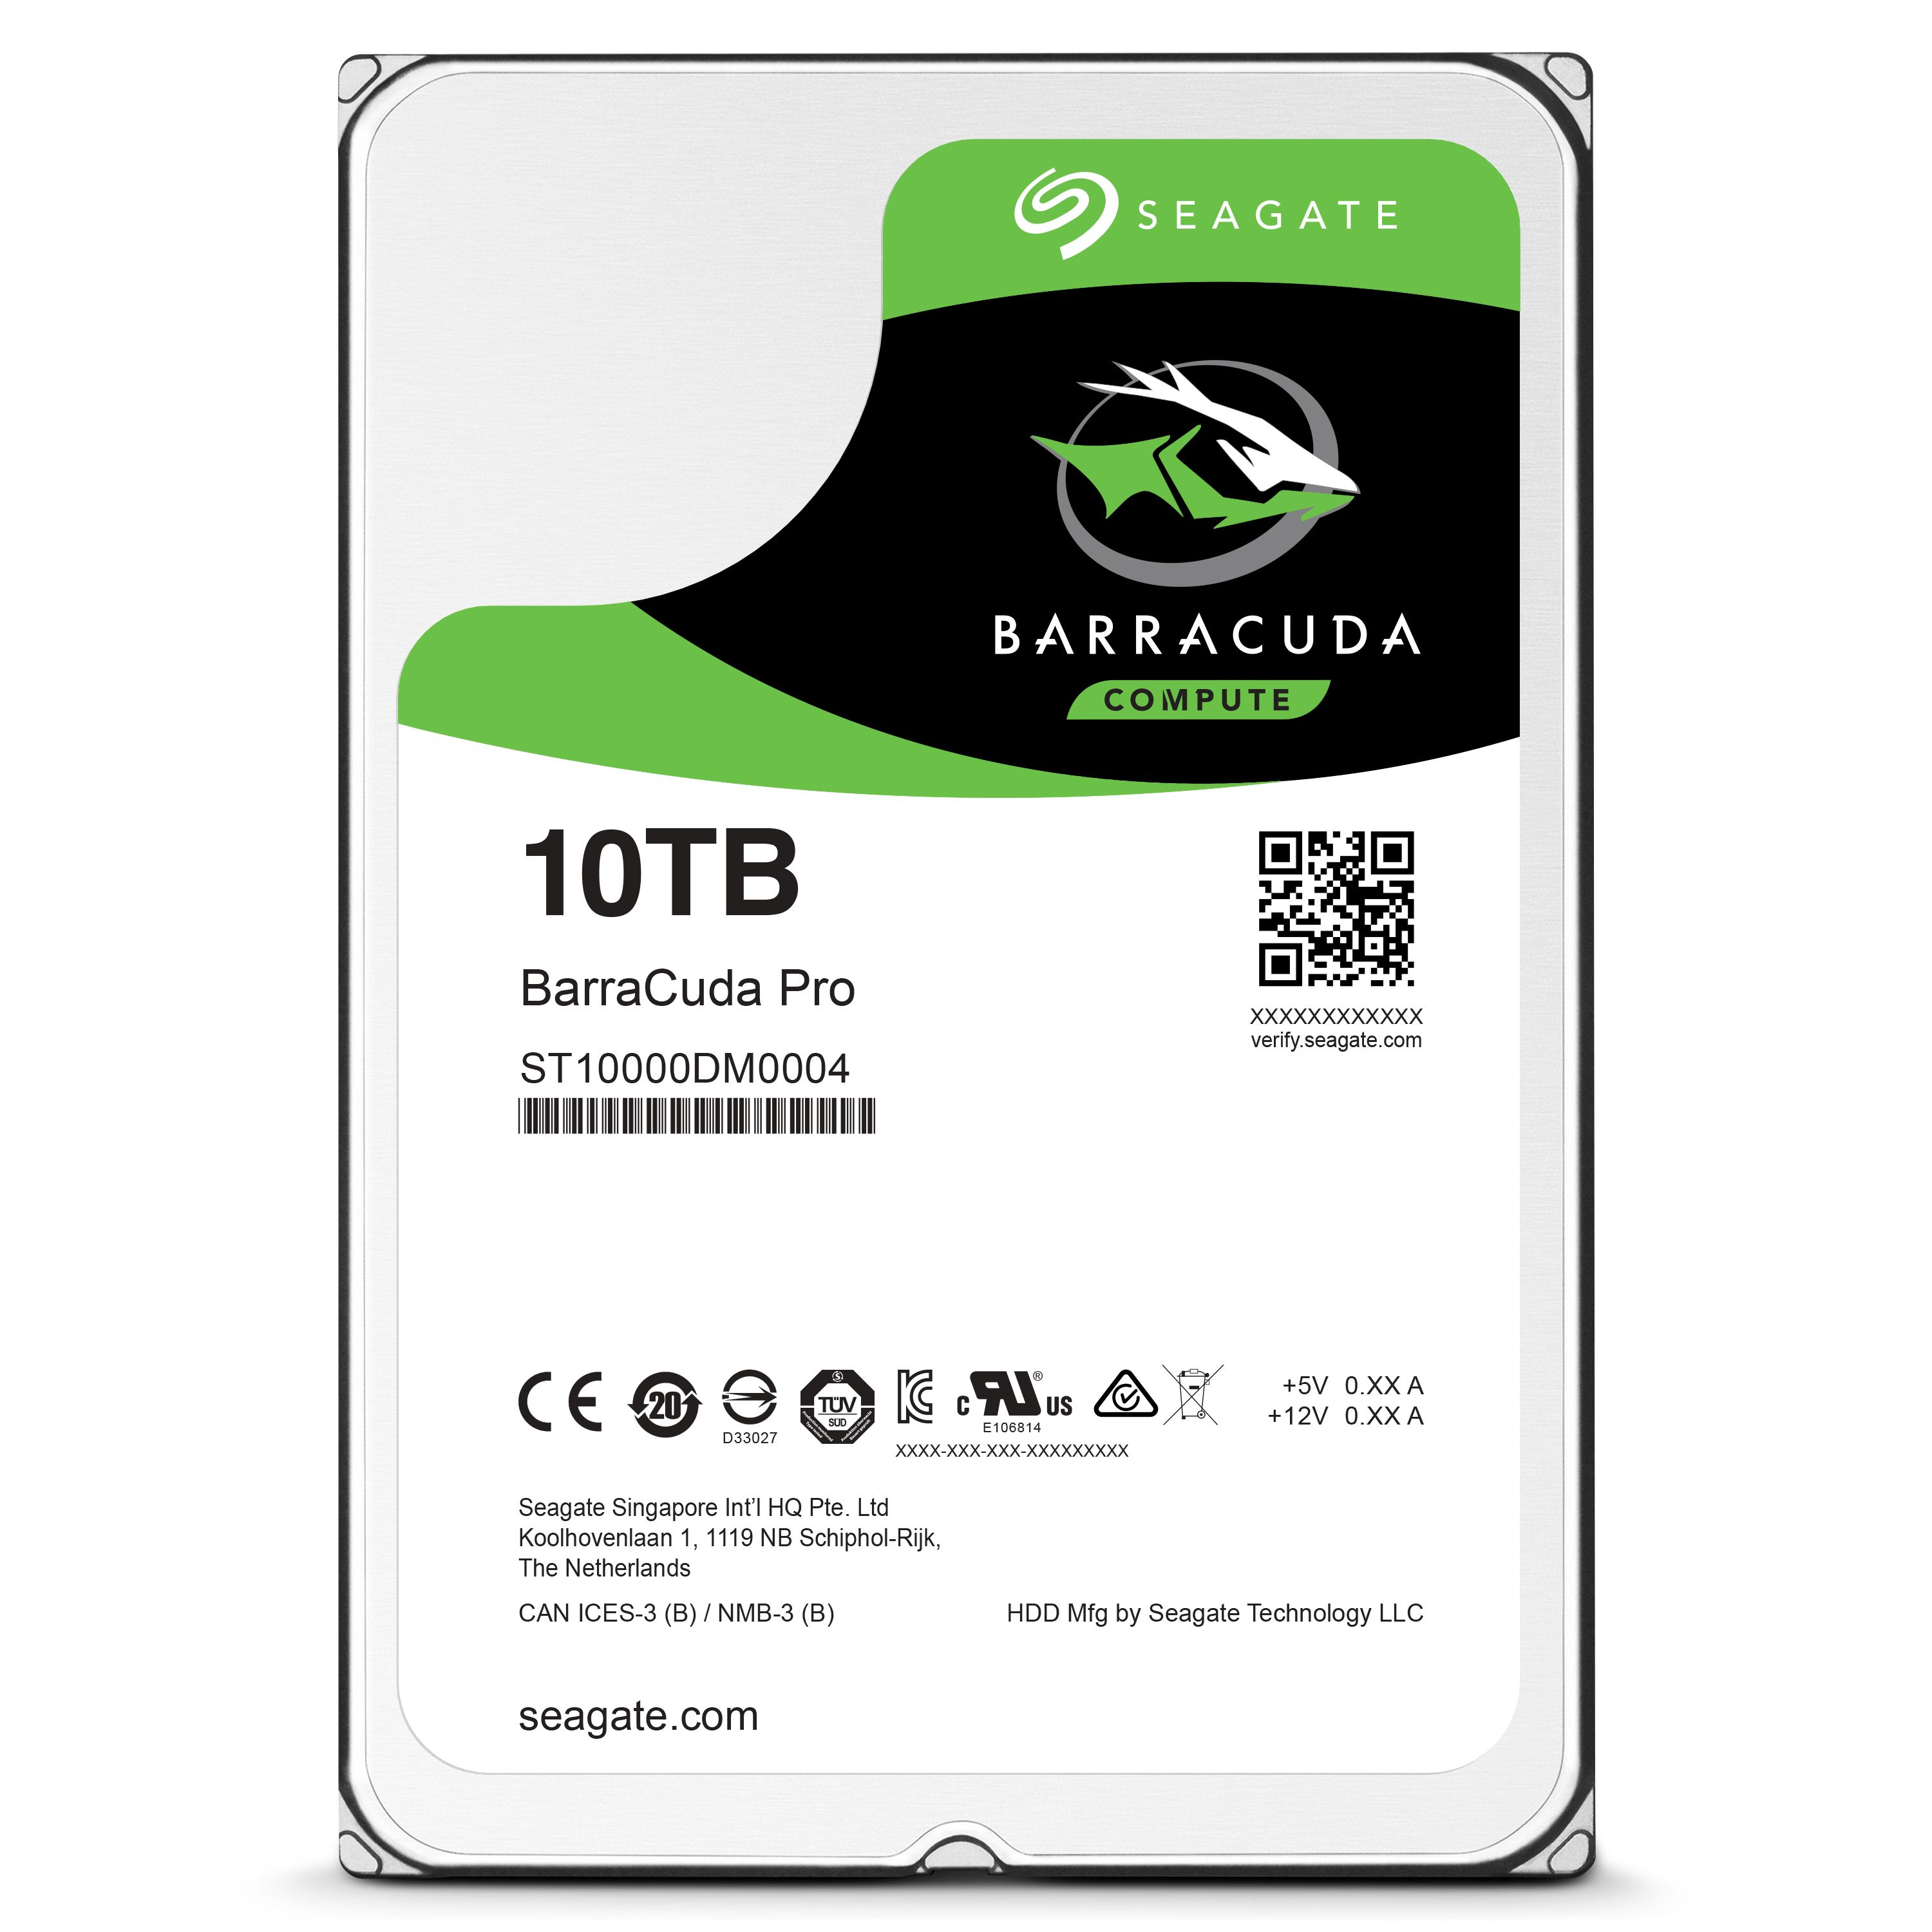 Seagate unveils hard drives with up to 10TB capacity | Computerworld